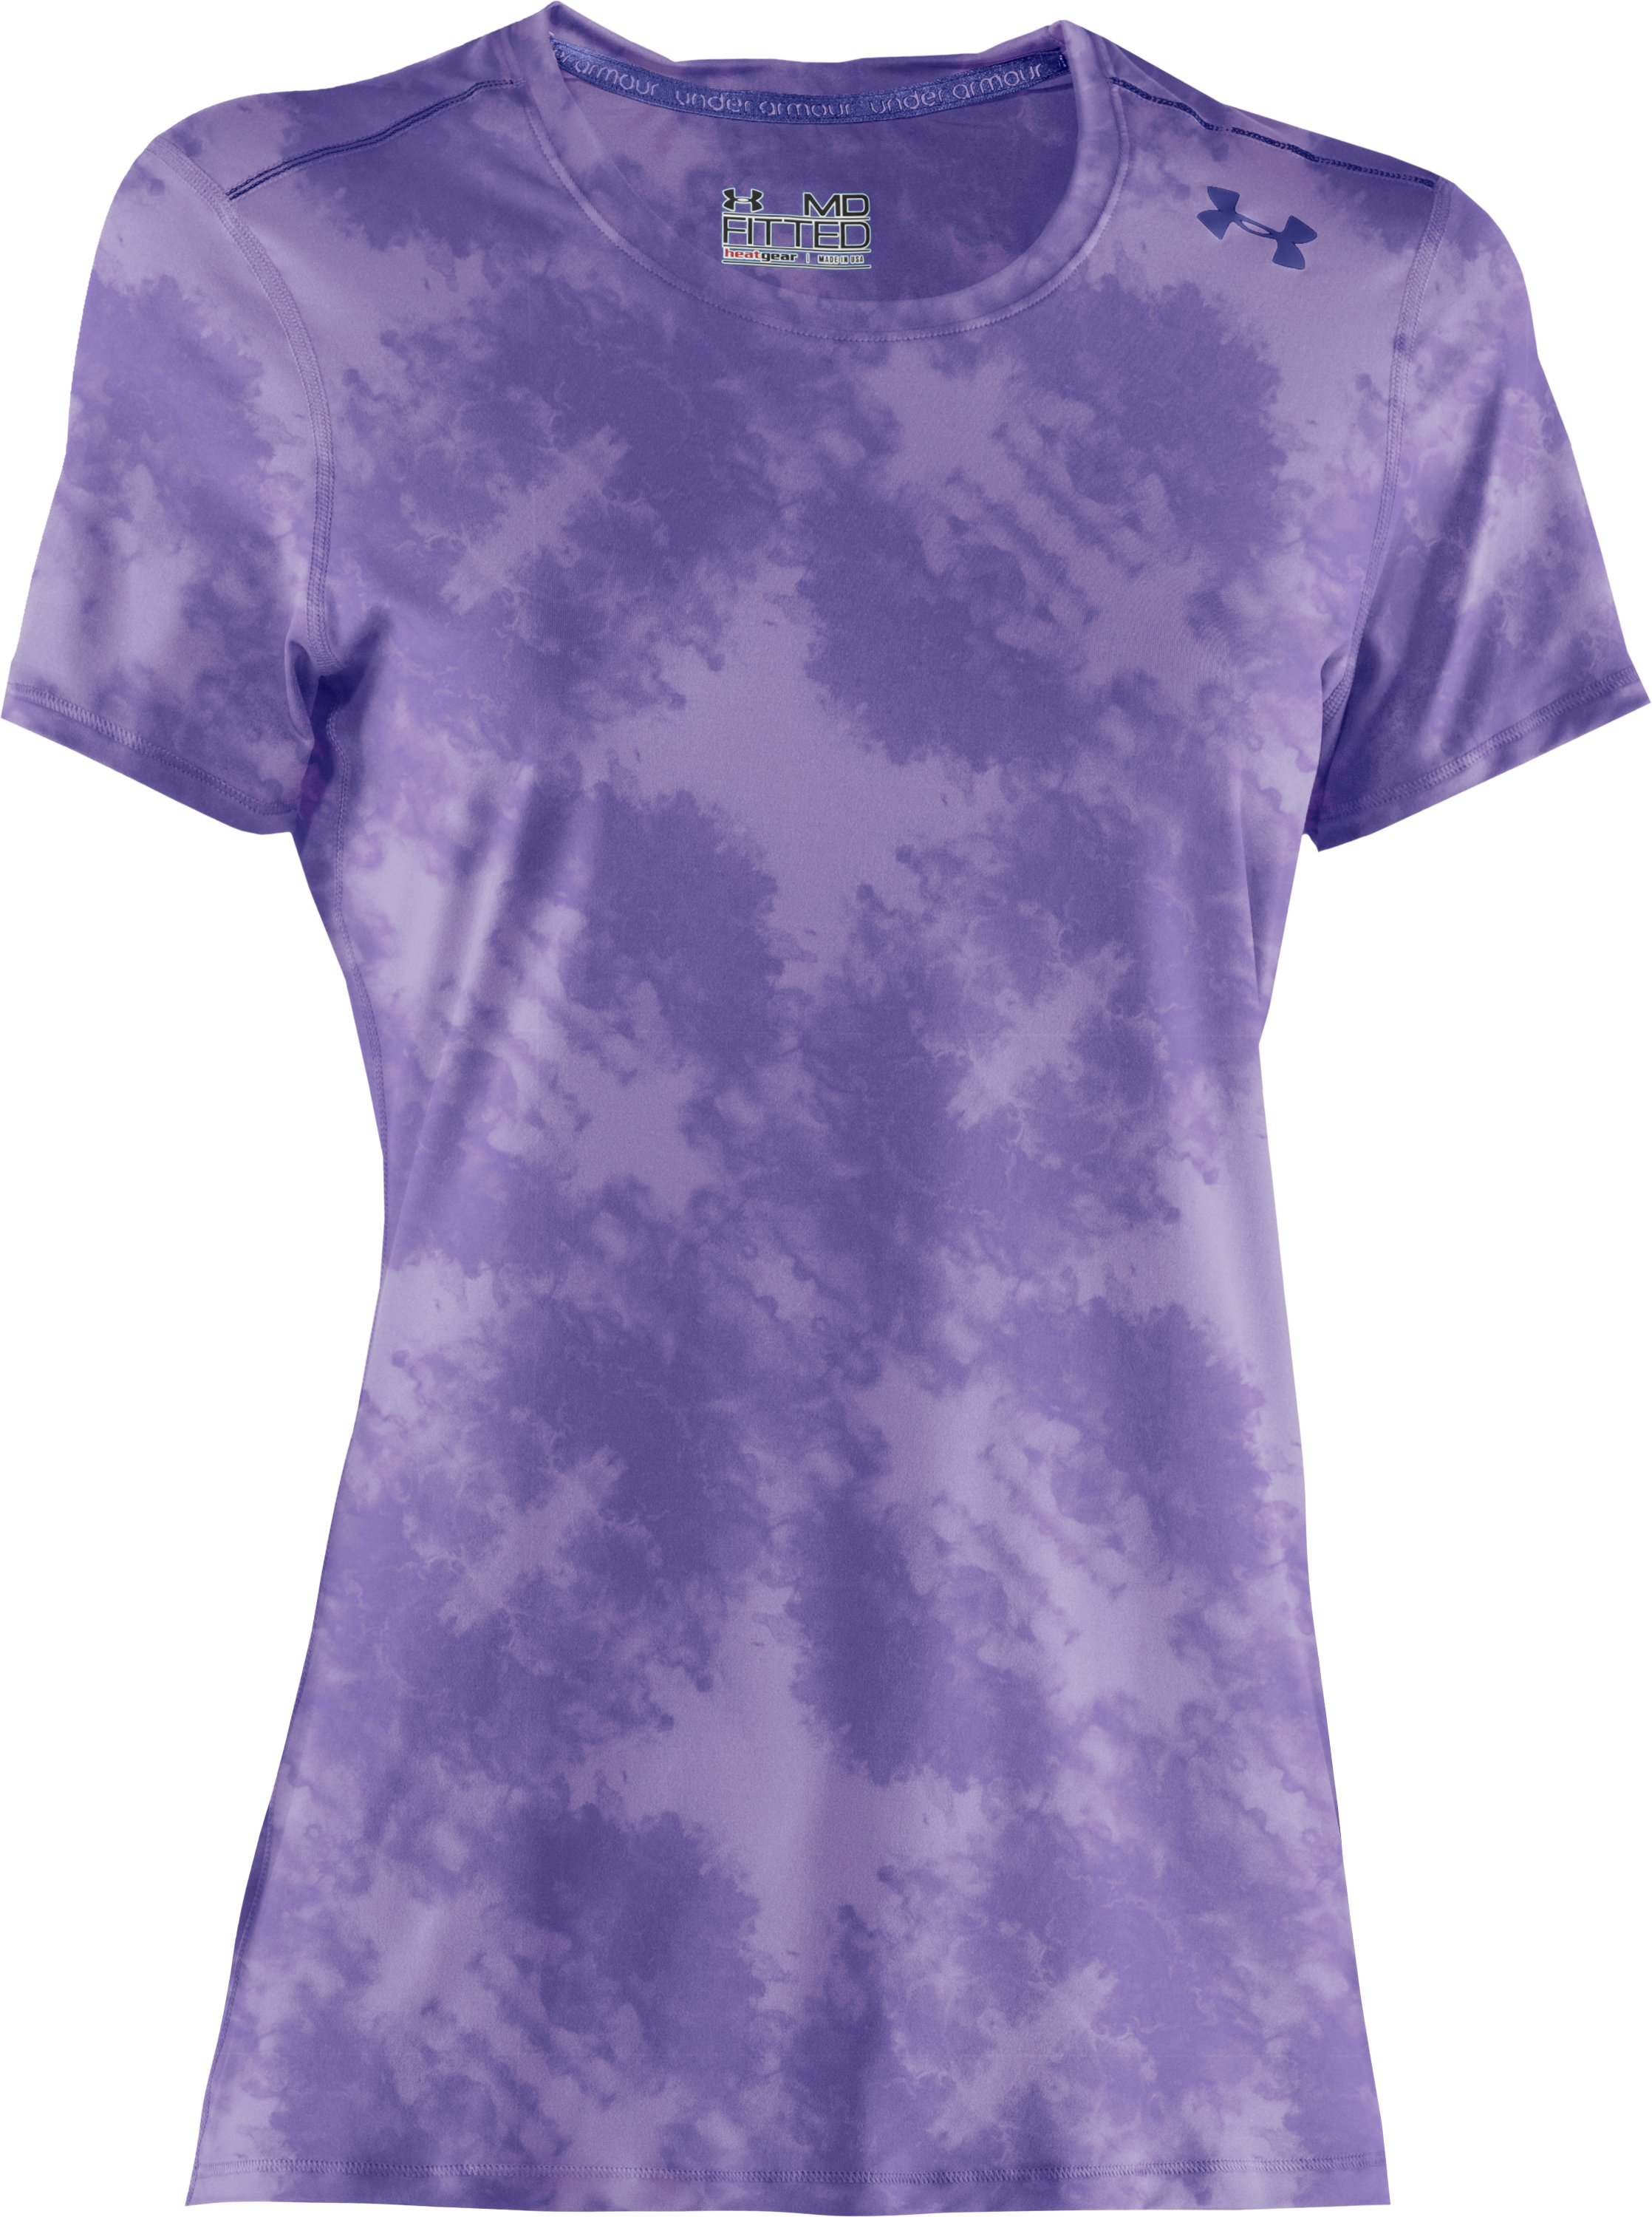 Women's HeatGear® Sonic Printed Short Sleeve, Petunia, undefined